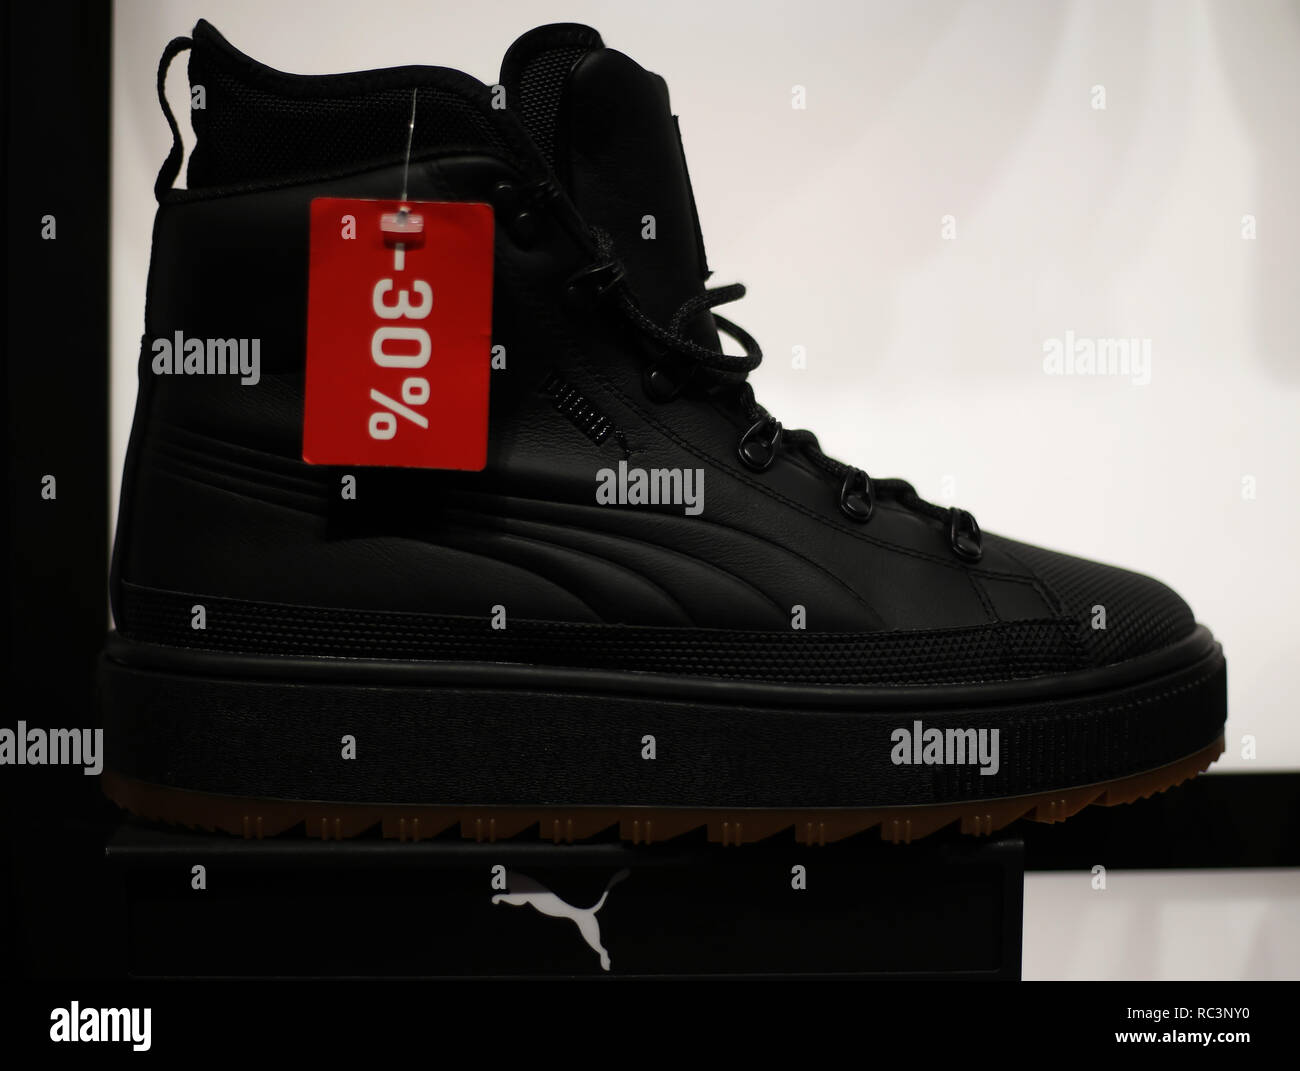 620c5385f927 Puma Shoes seen on sale in an Ocean Plaza mall shop. Credit  Mohammad Javad  Abjoushak SOPA Images ZUMA Wire Alamy Live News